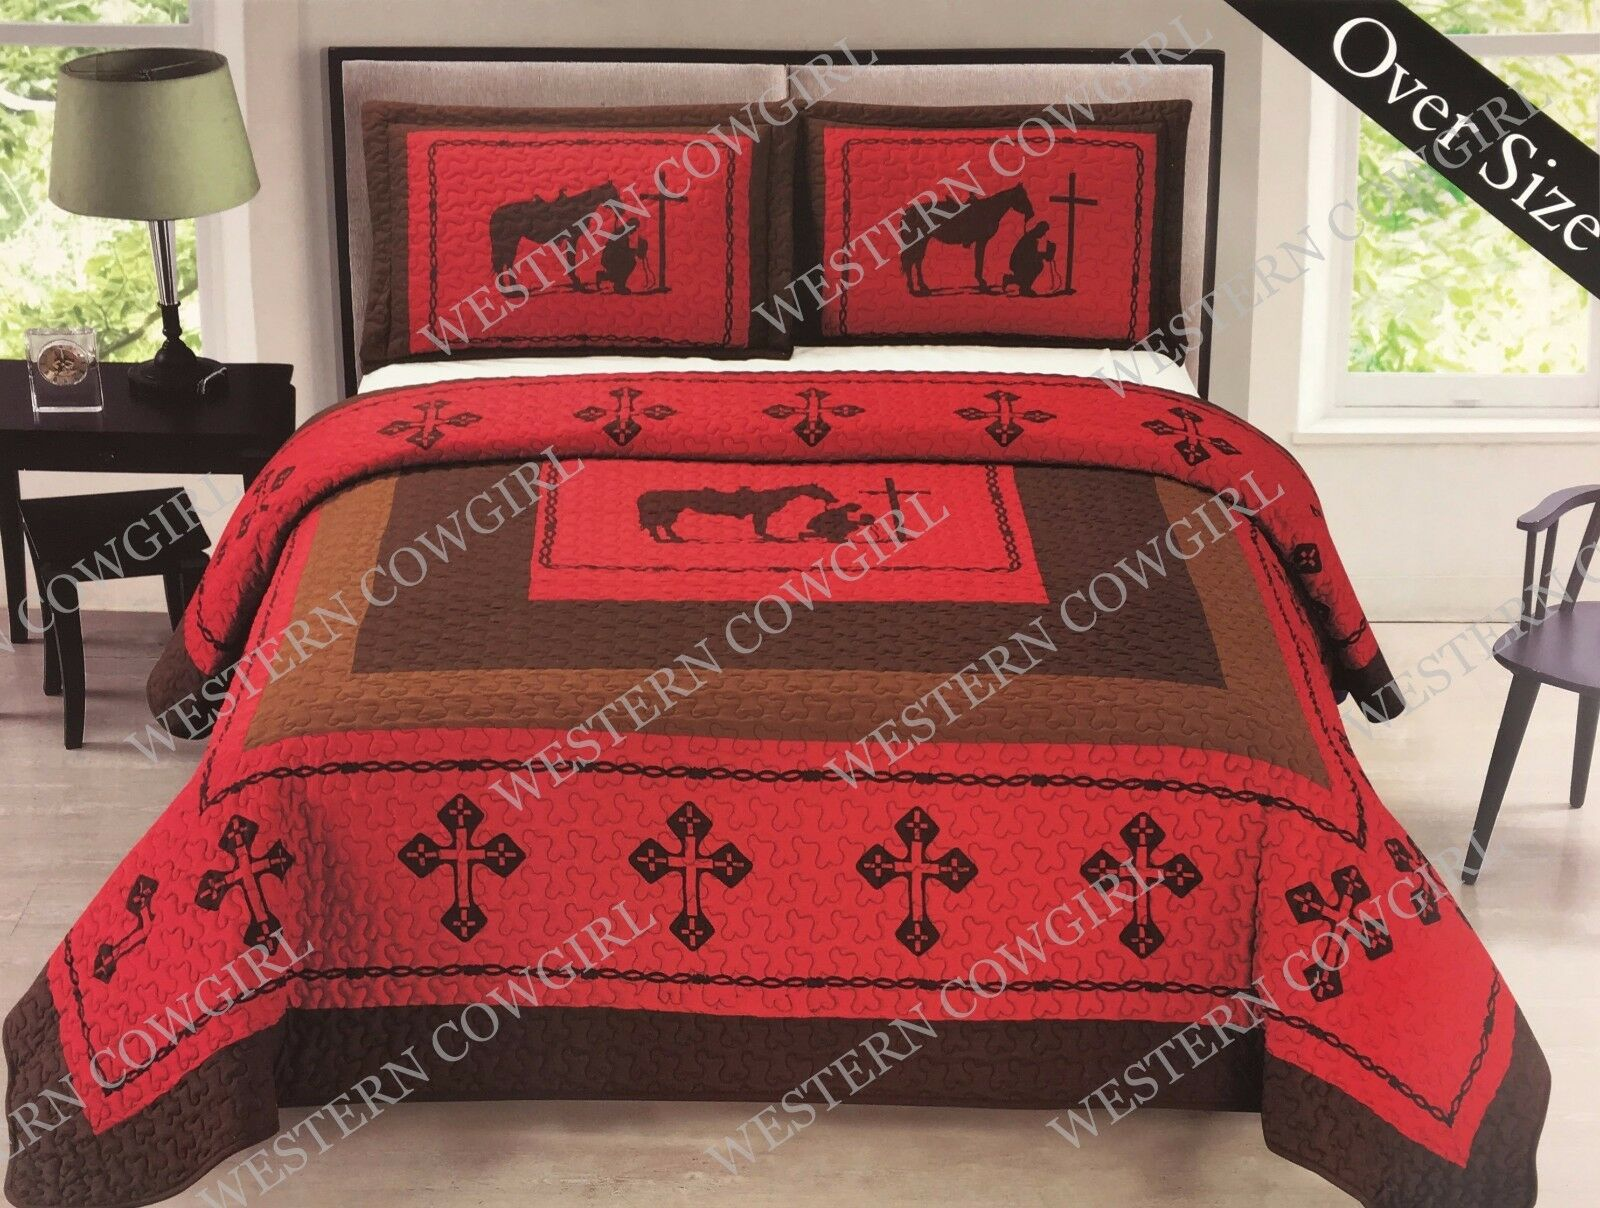 Cowboys Comforter: Texas Praying Cowboy Cross Western Quilt Bedspread